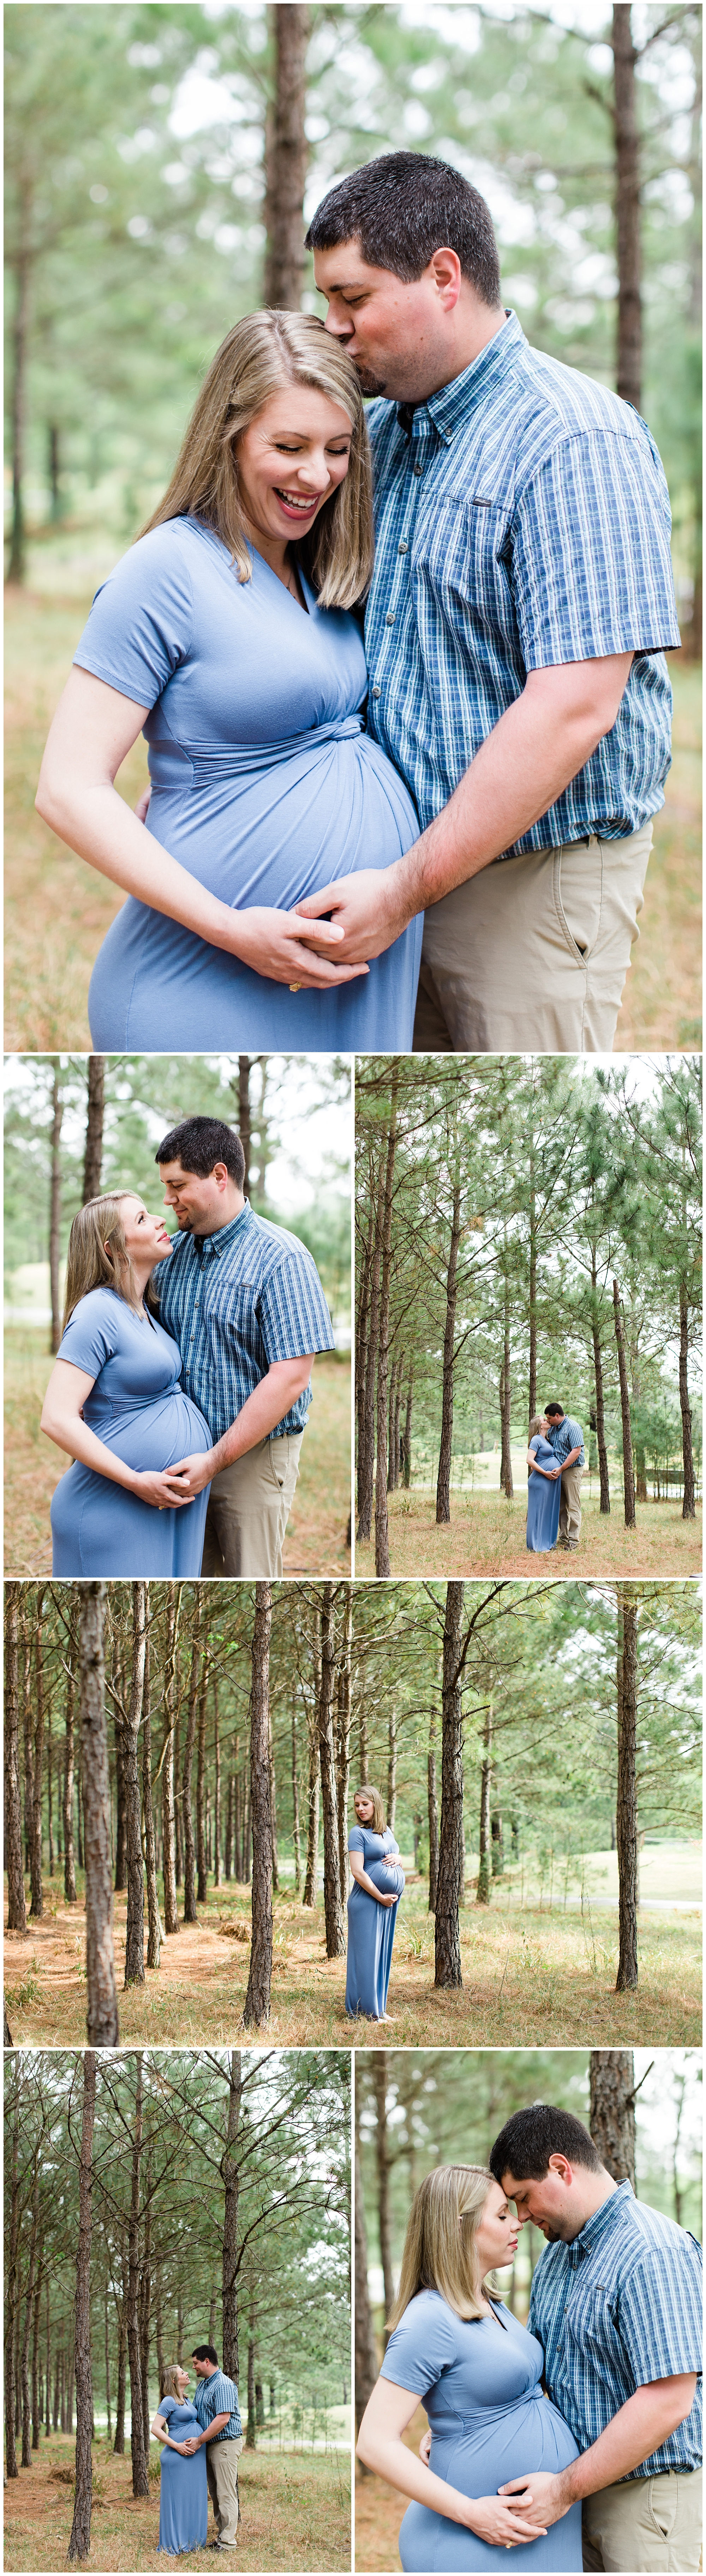 The_Woodlands_Maternity_Session_0002.jpg